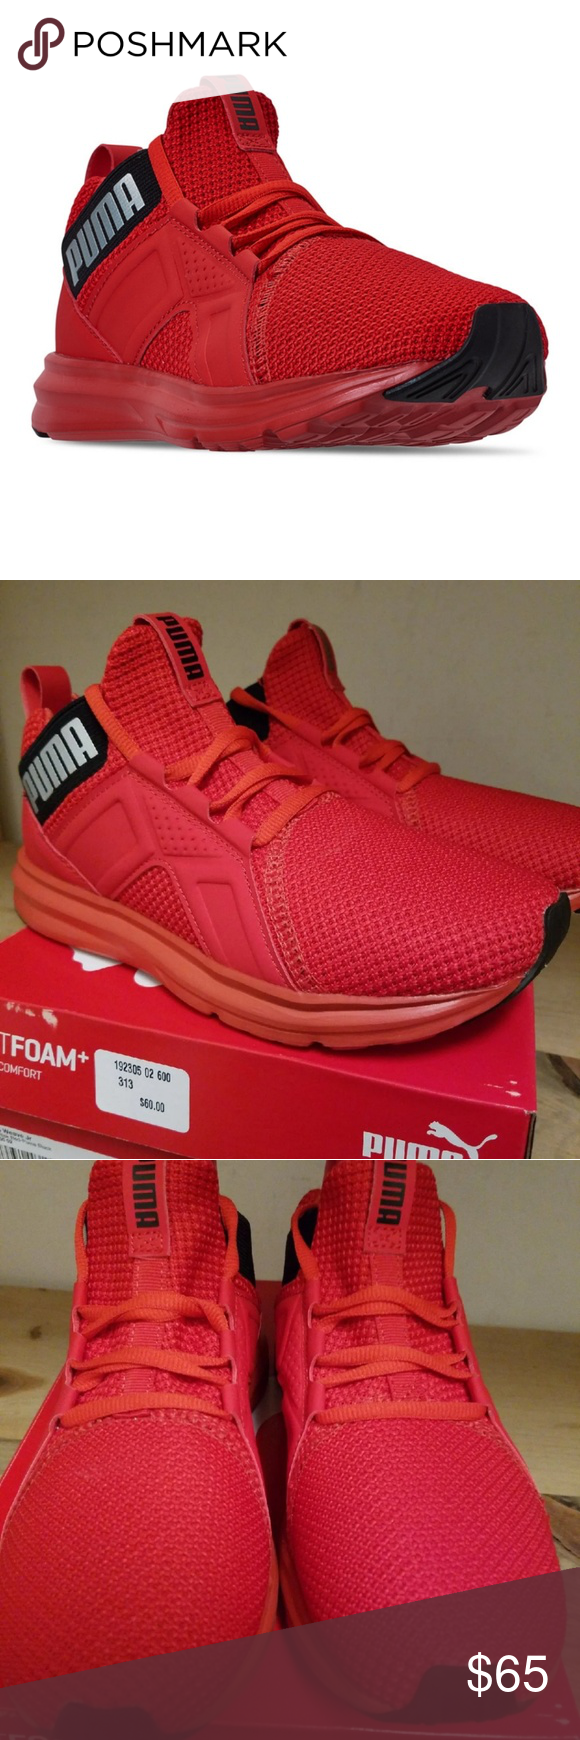 Puma Enzo Weave Jr Equivalence to womans 6 BRAND NEW WITH